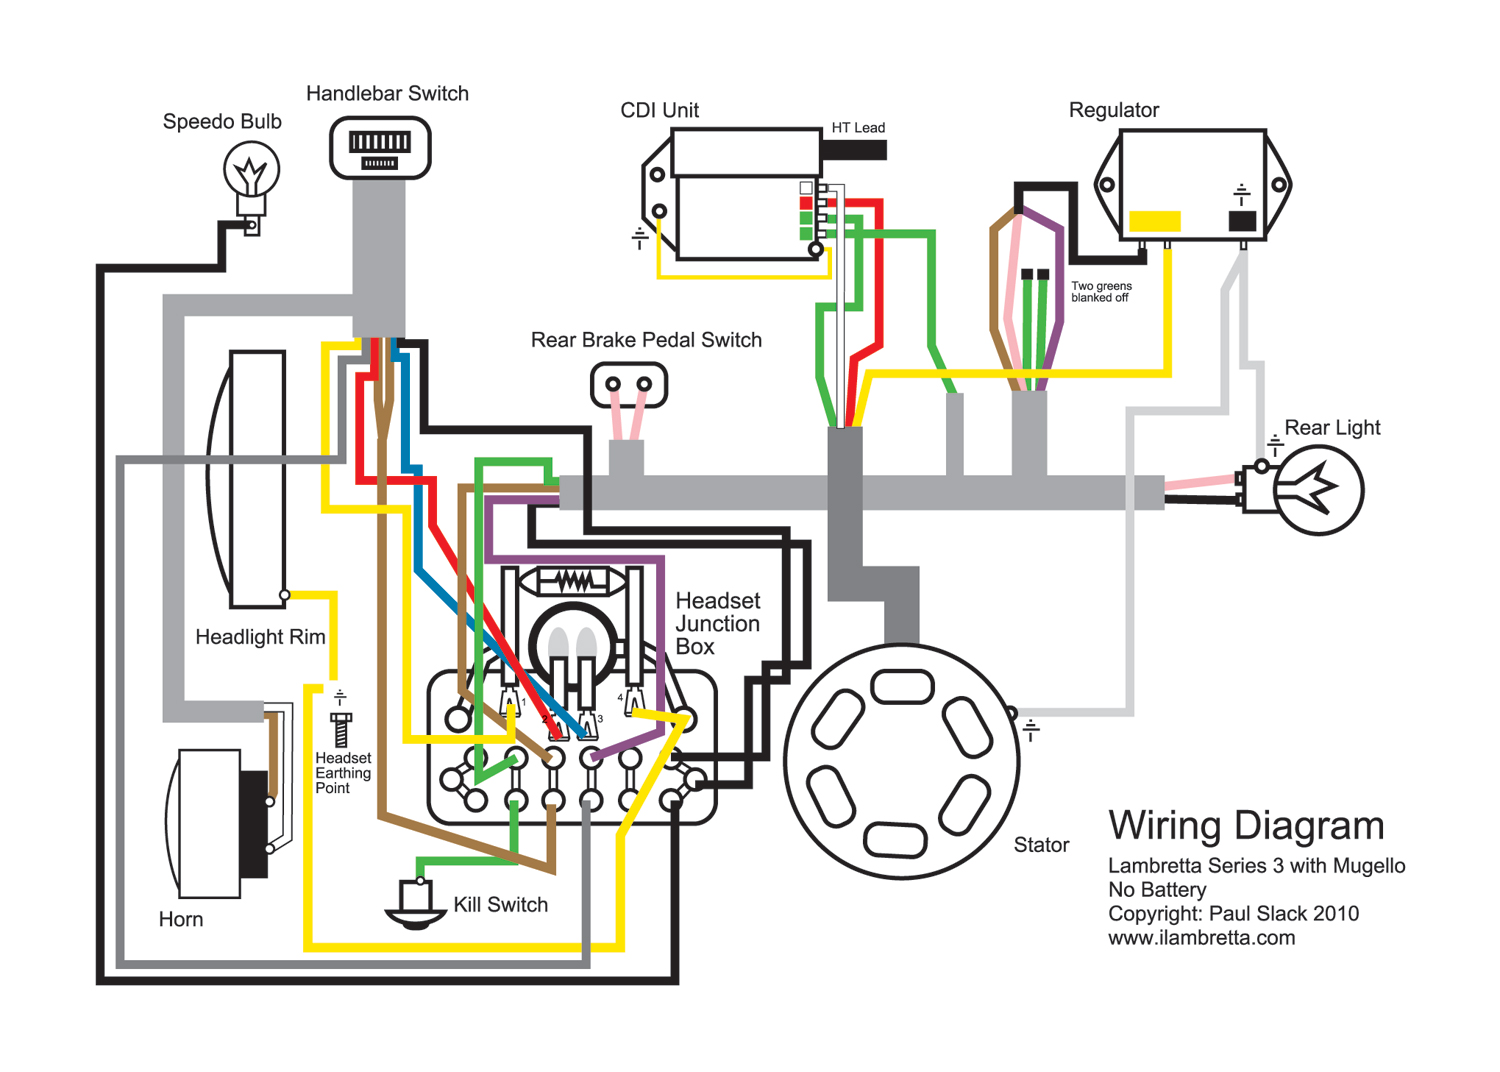 pagsta mini chopper wiring diagram ryobi 790r fuel line problem 49ccscootcom scooter forums 49cc chinese moped best library